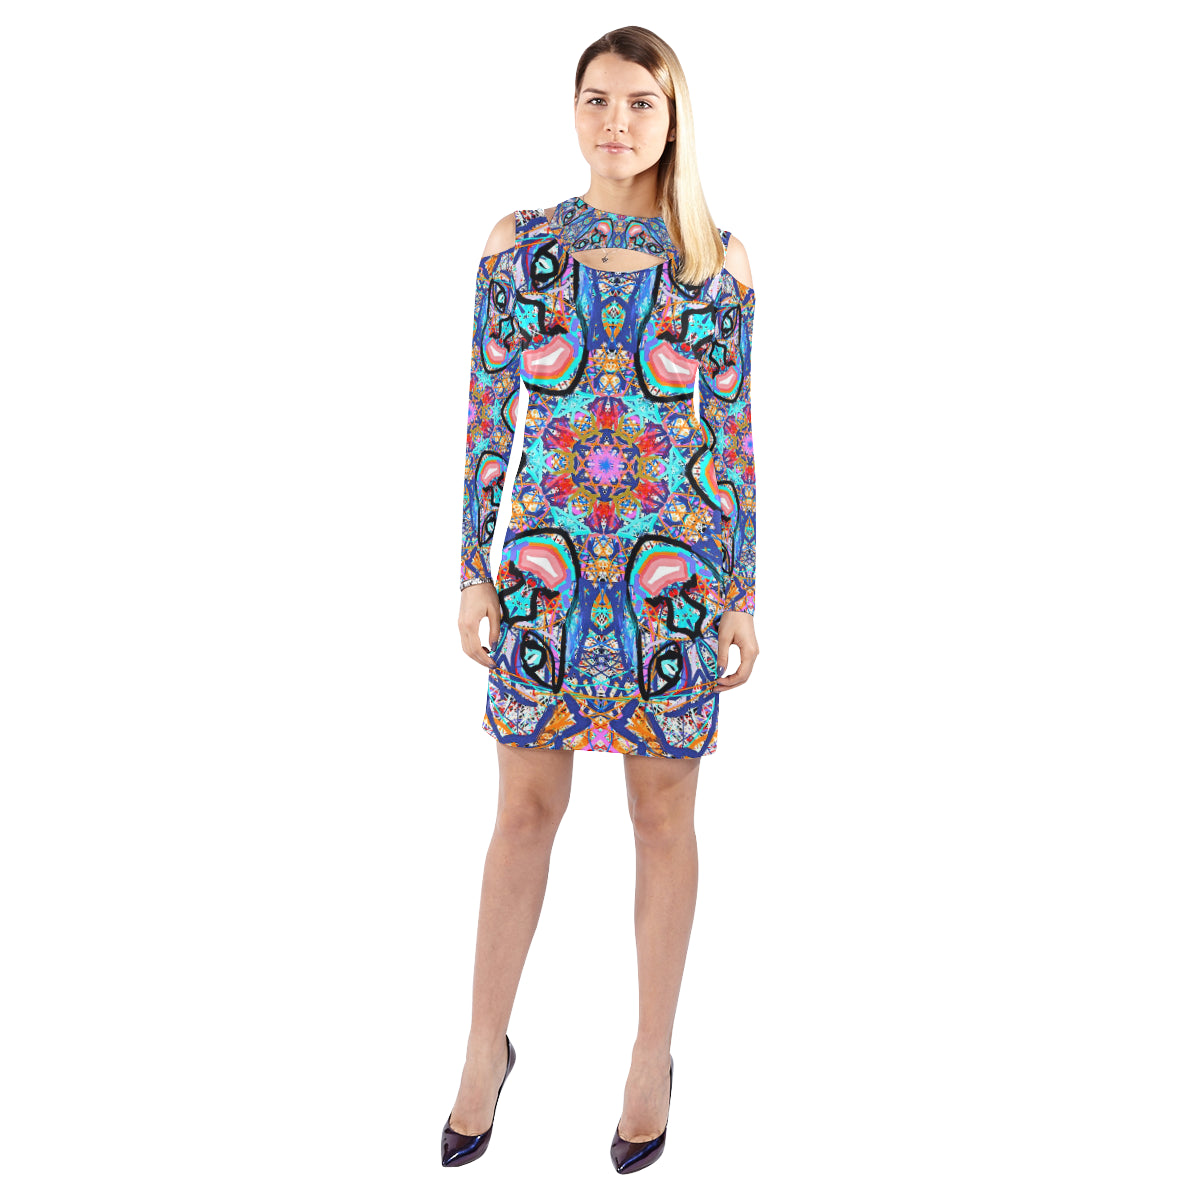 Thleudron Women's Vicking Cold Shoulder Long Sleeve Dress (Model D37) - Thleudron